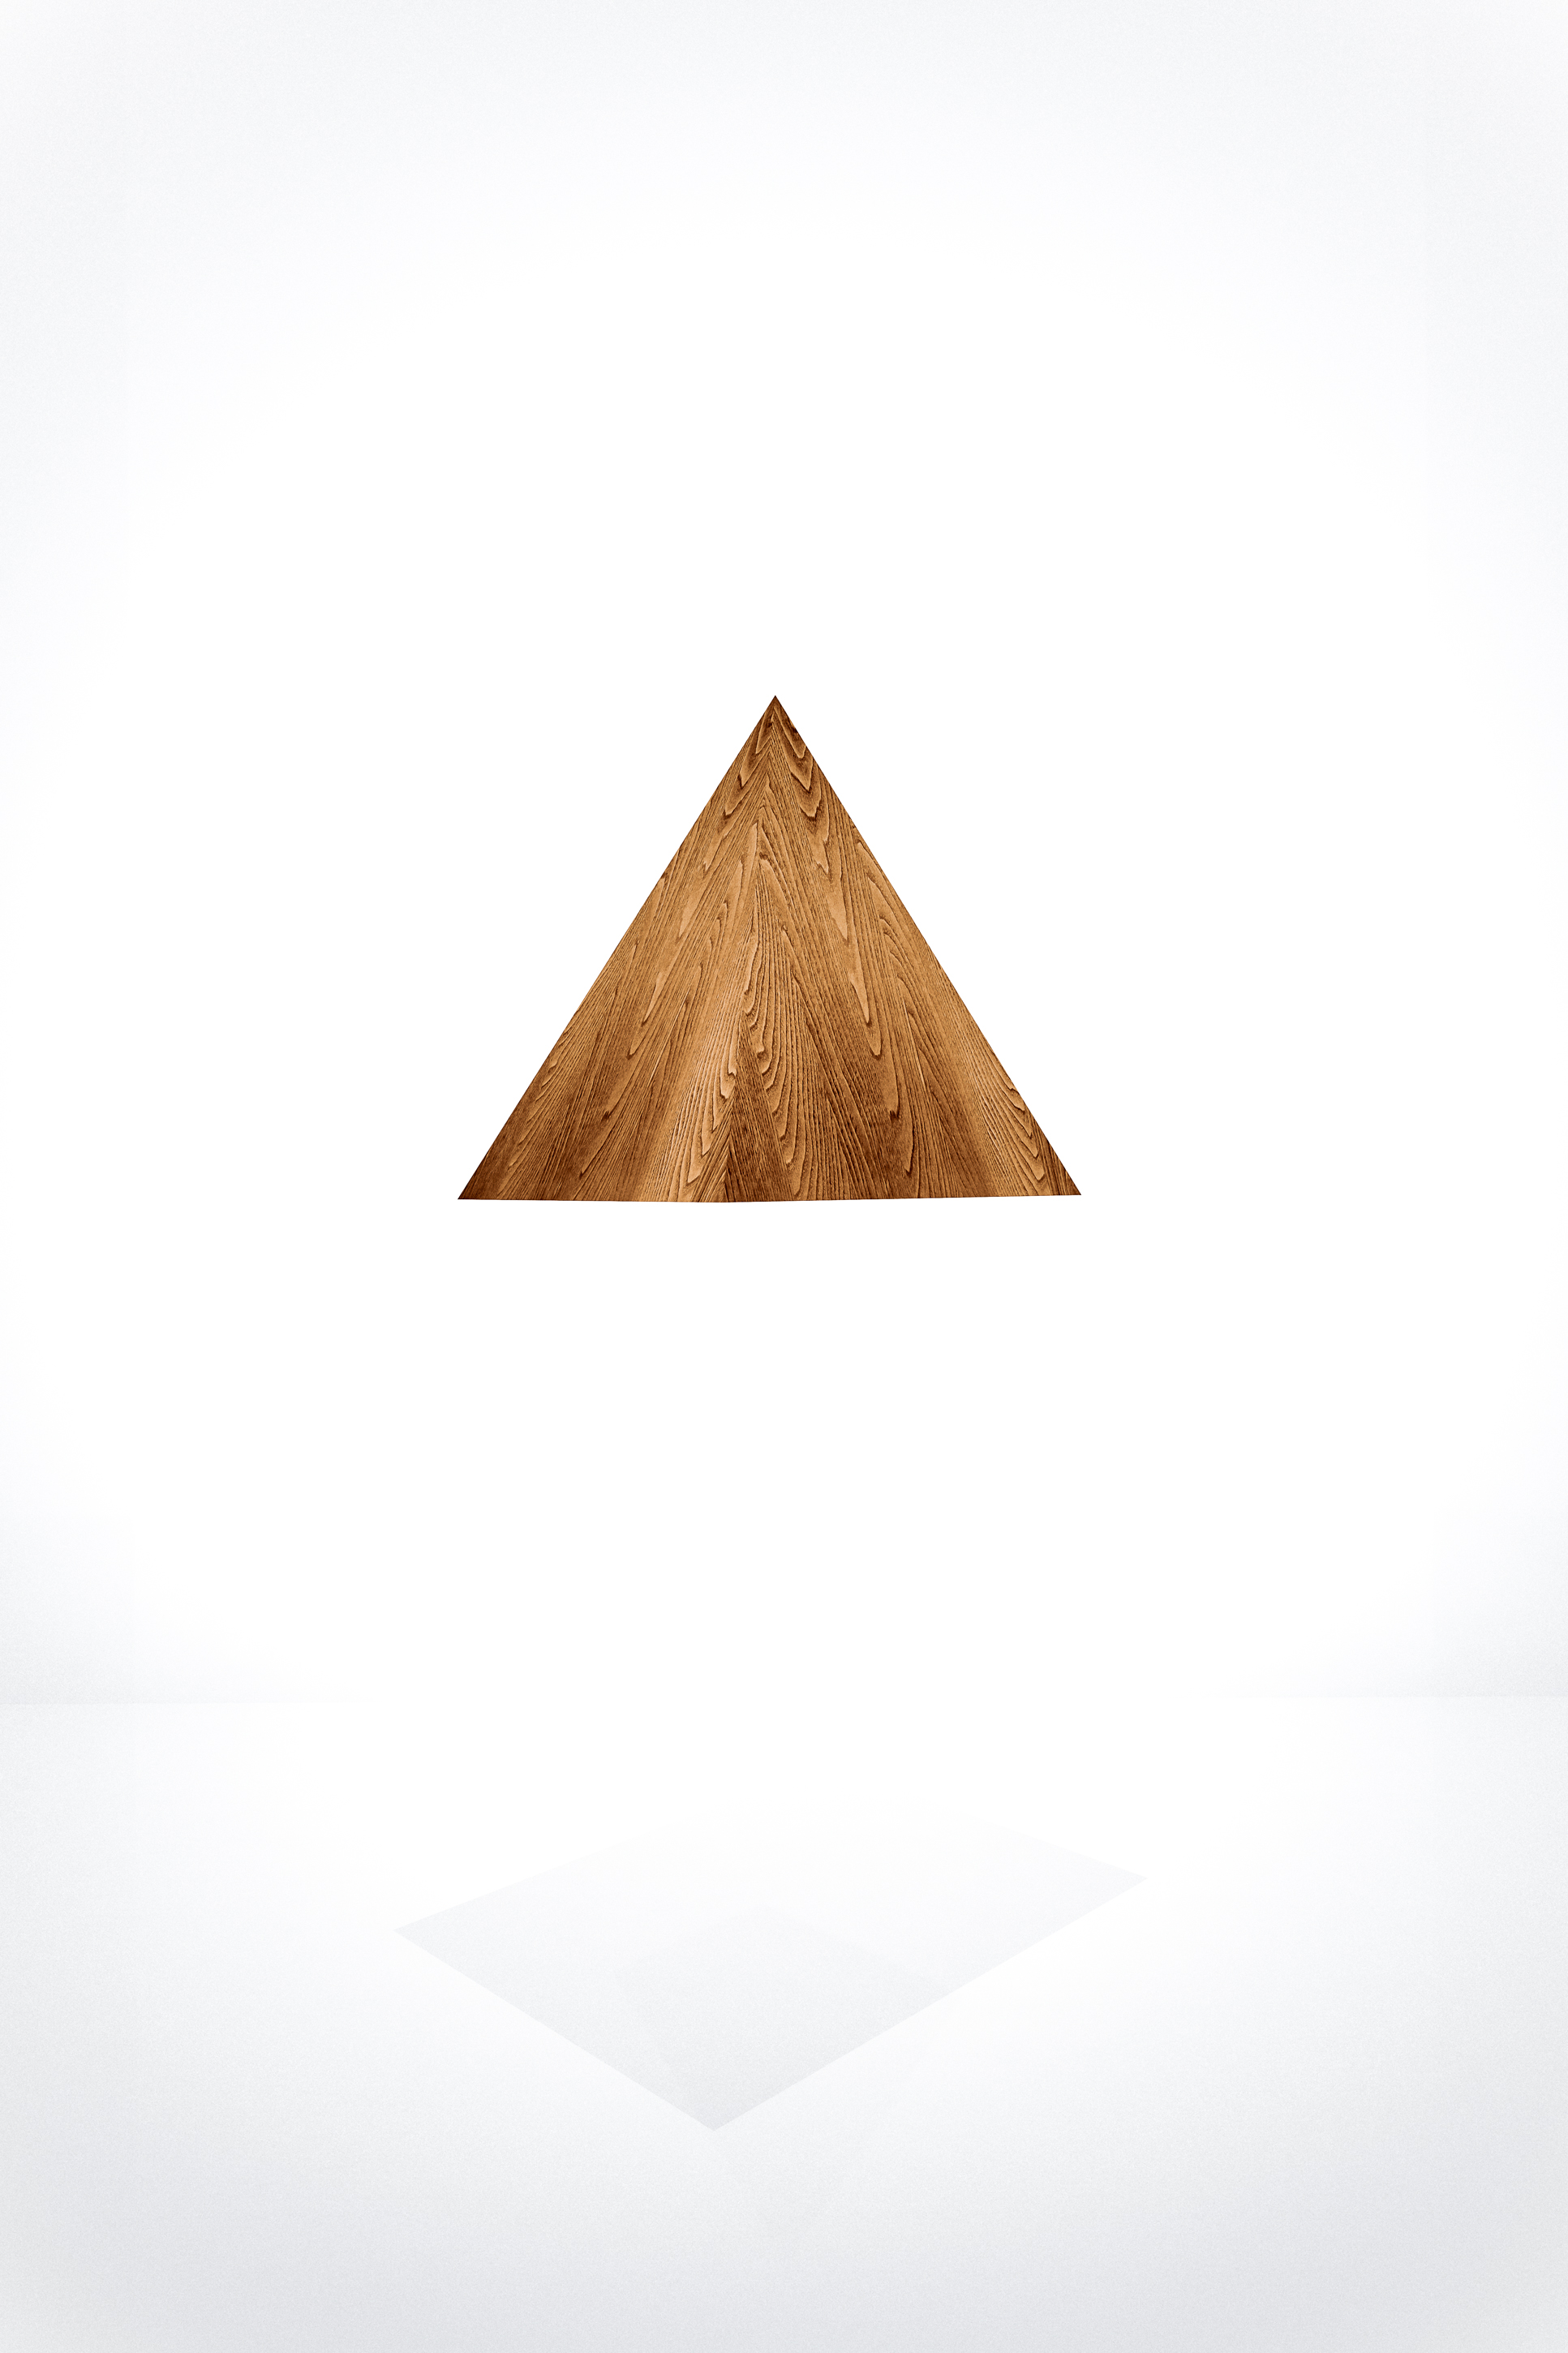 alban_guerry-suire_wooden_geometry-005.jpg